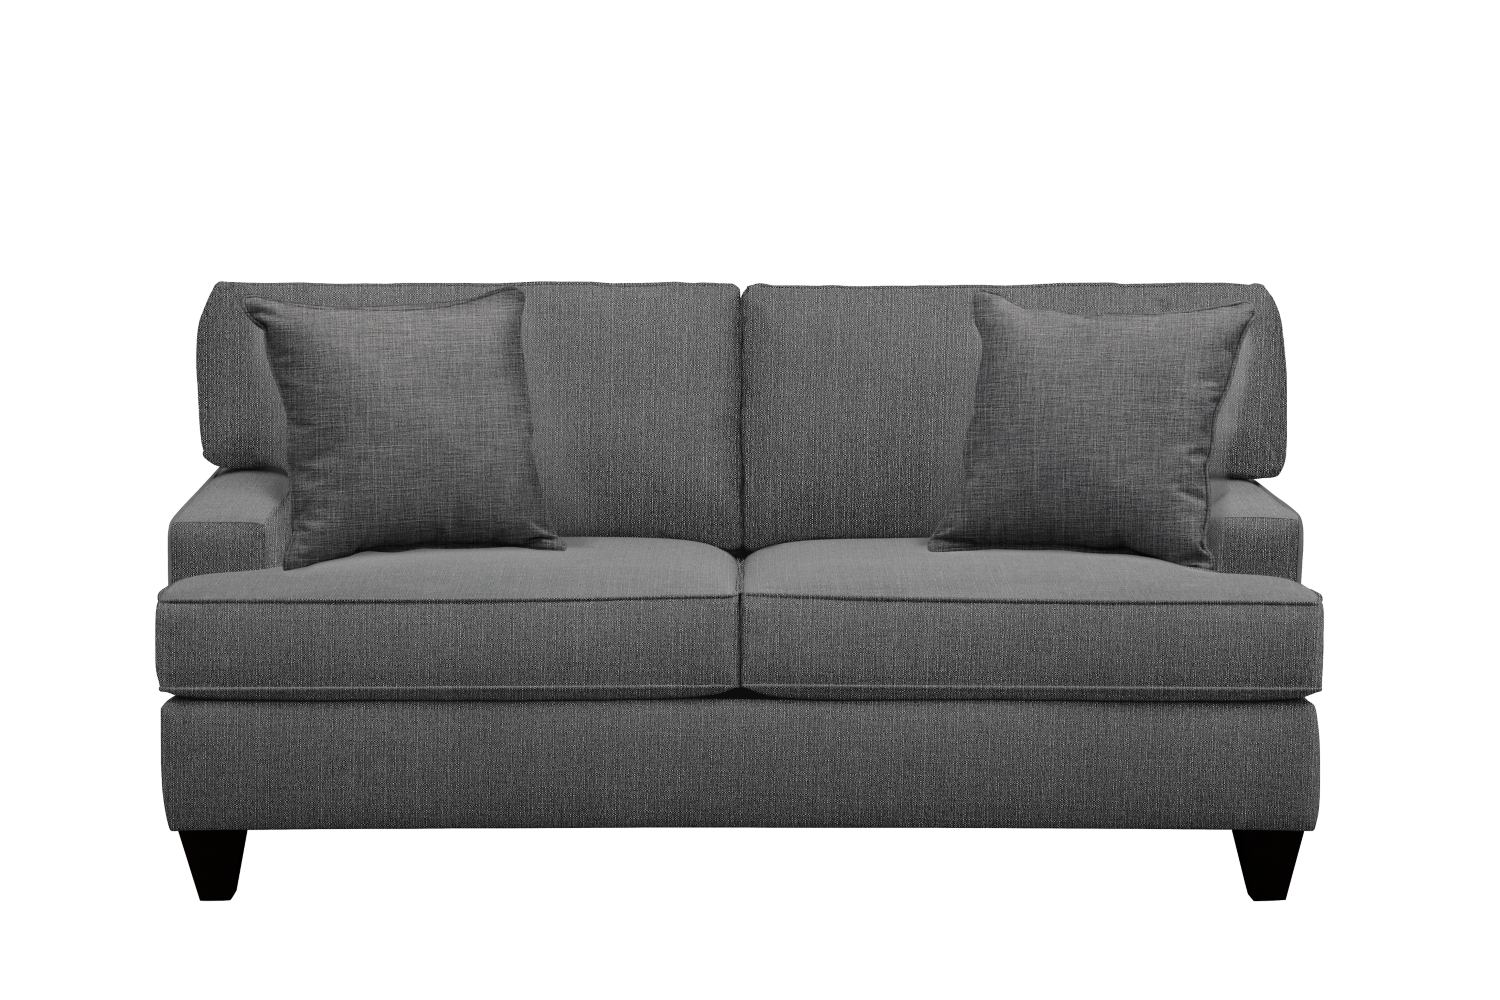 "Conner Track Arm Sofa 75"" Depalma Charcoal w/ Depalma Charcoal Pillow"